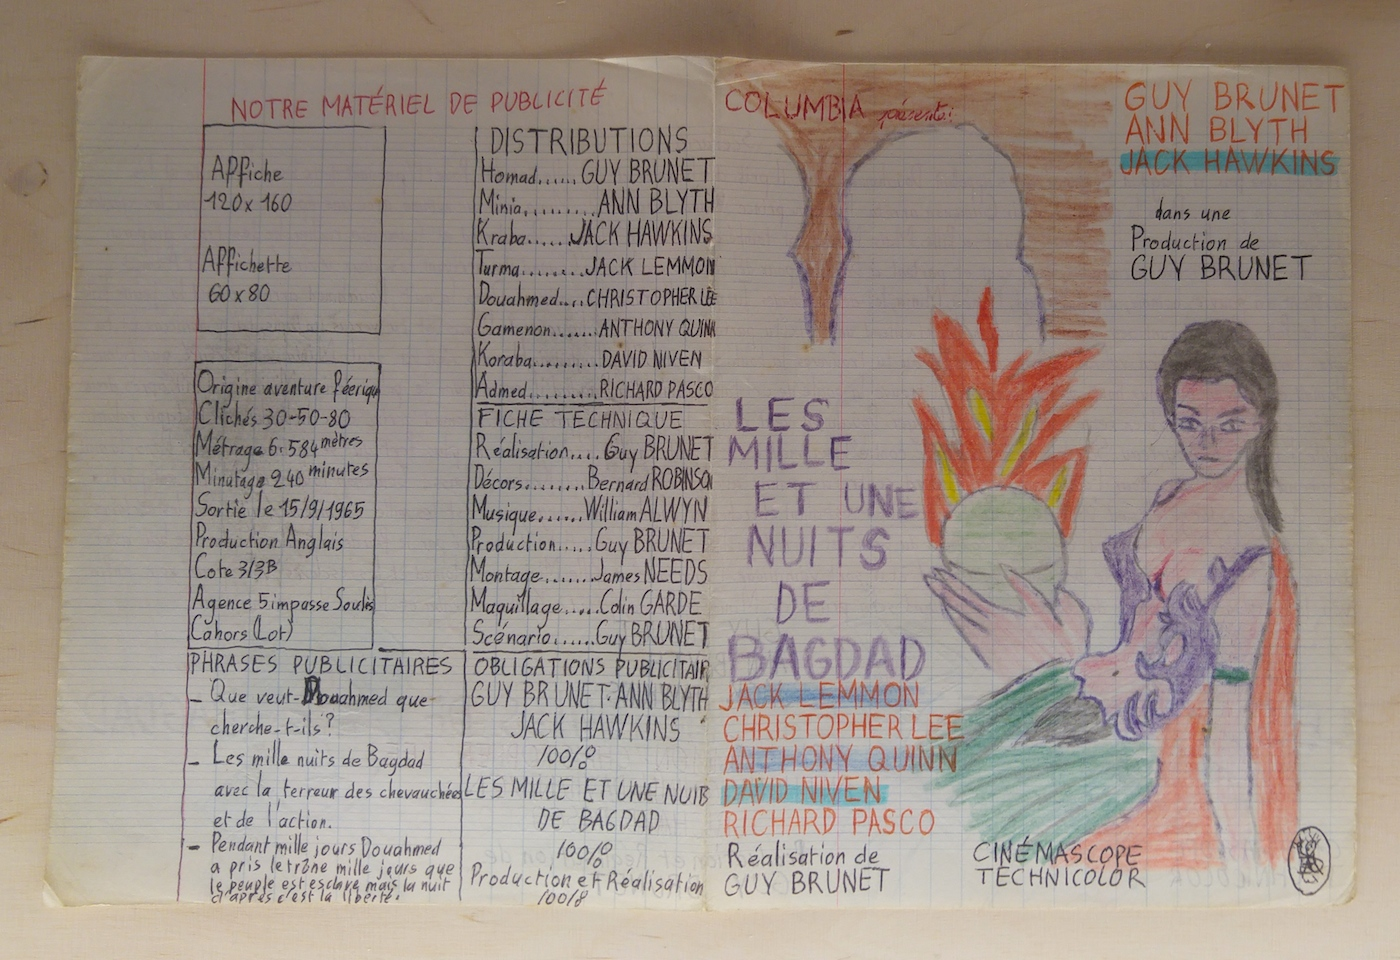 One of Guy Brunet's hand-drawn film posters, created in a school notebook